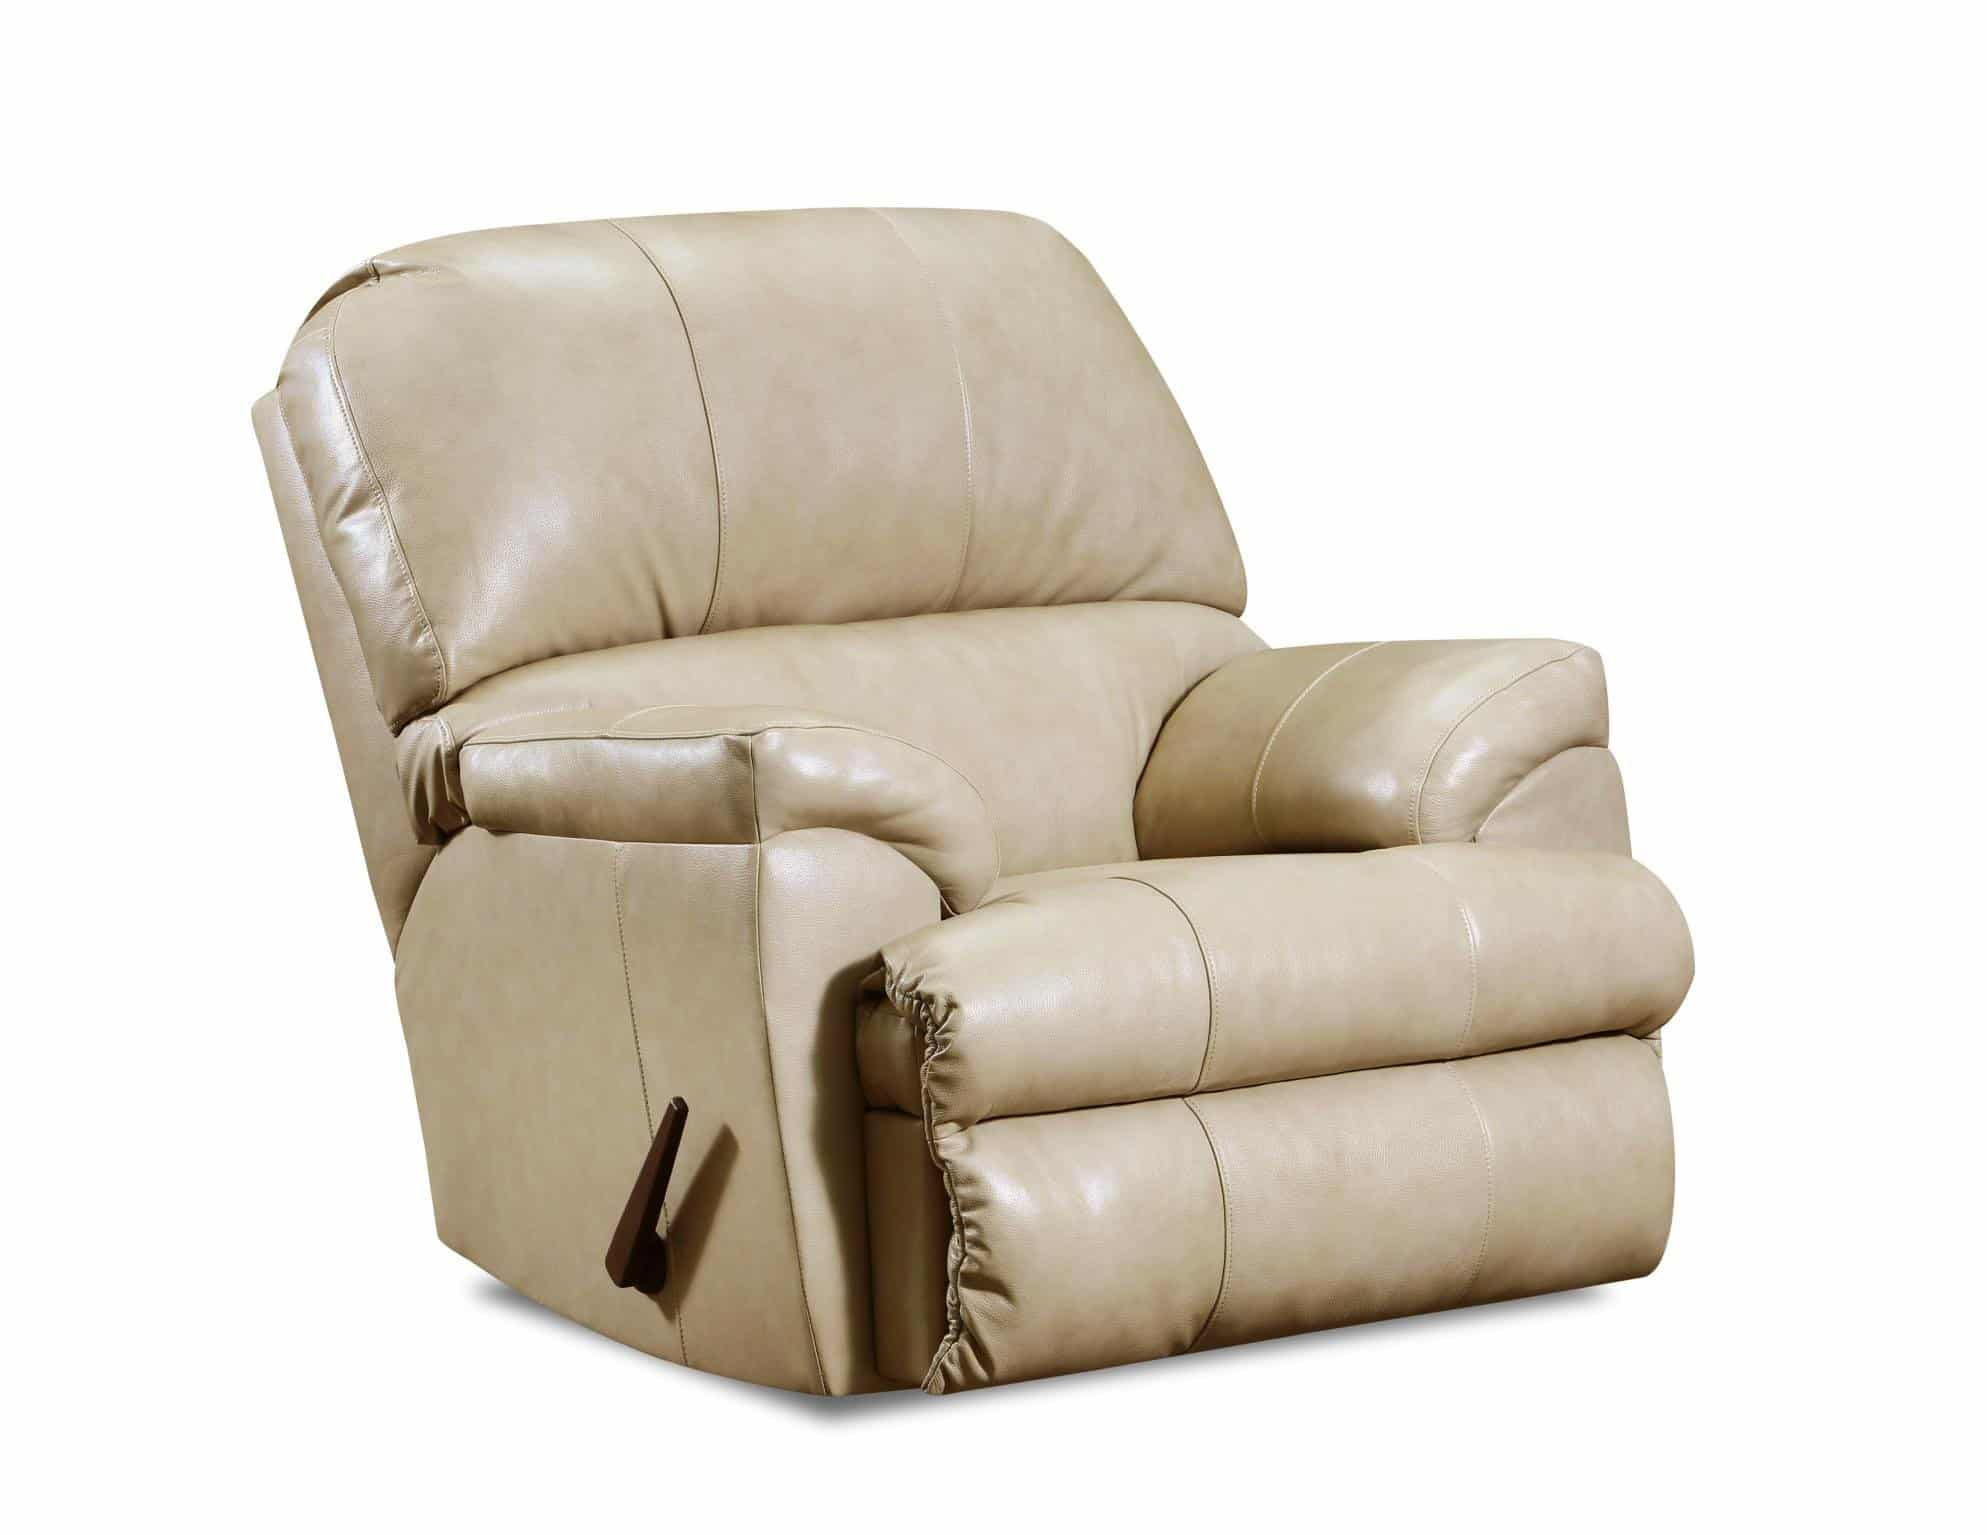 phygia tan leather recliner chair 55762